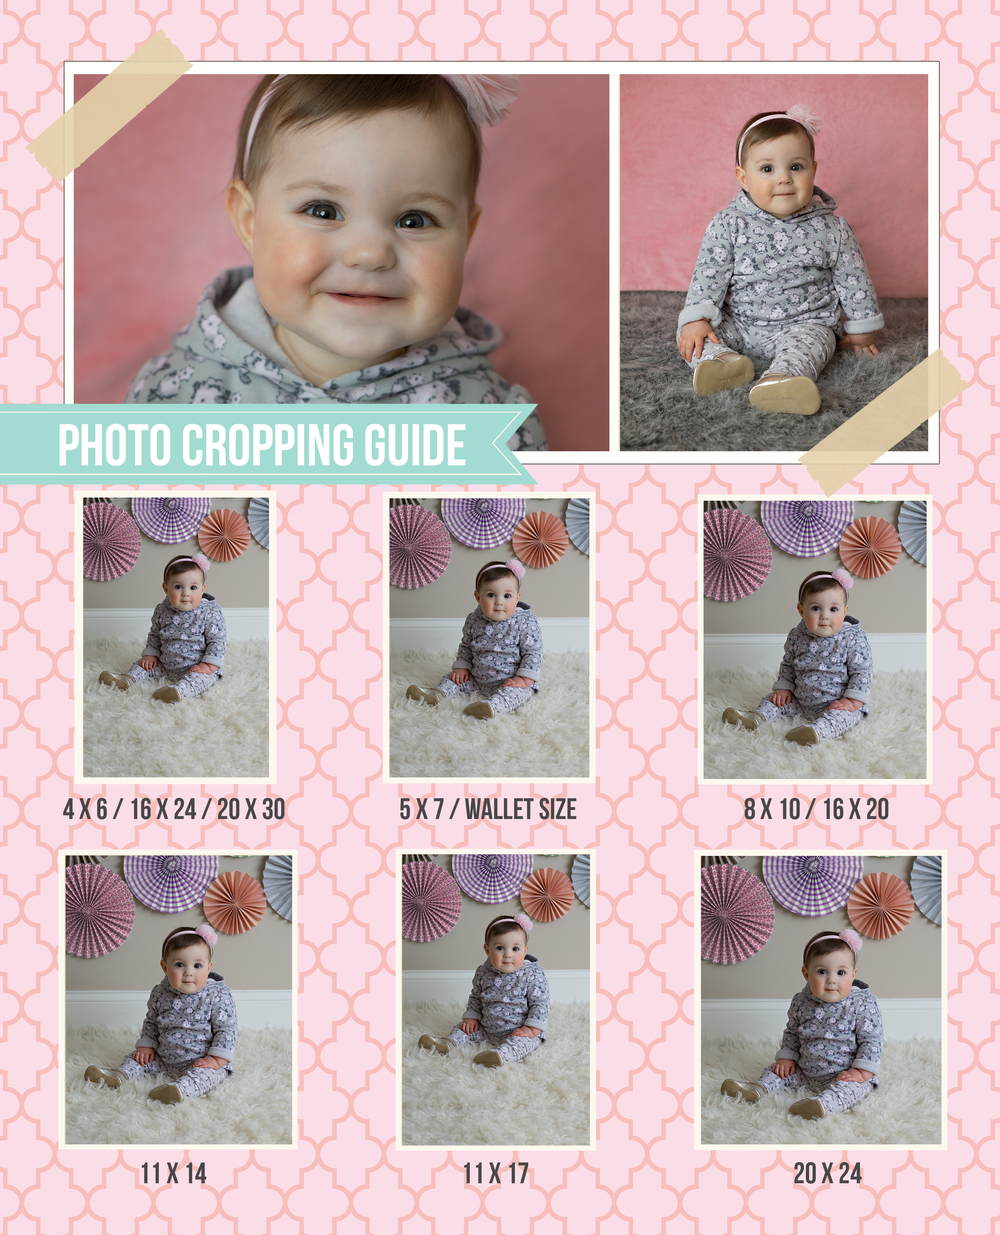 Cropping guide. Columbus Ohio photographer.